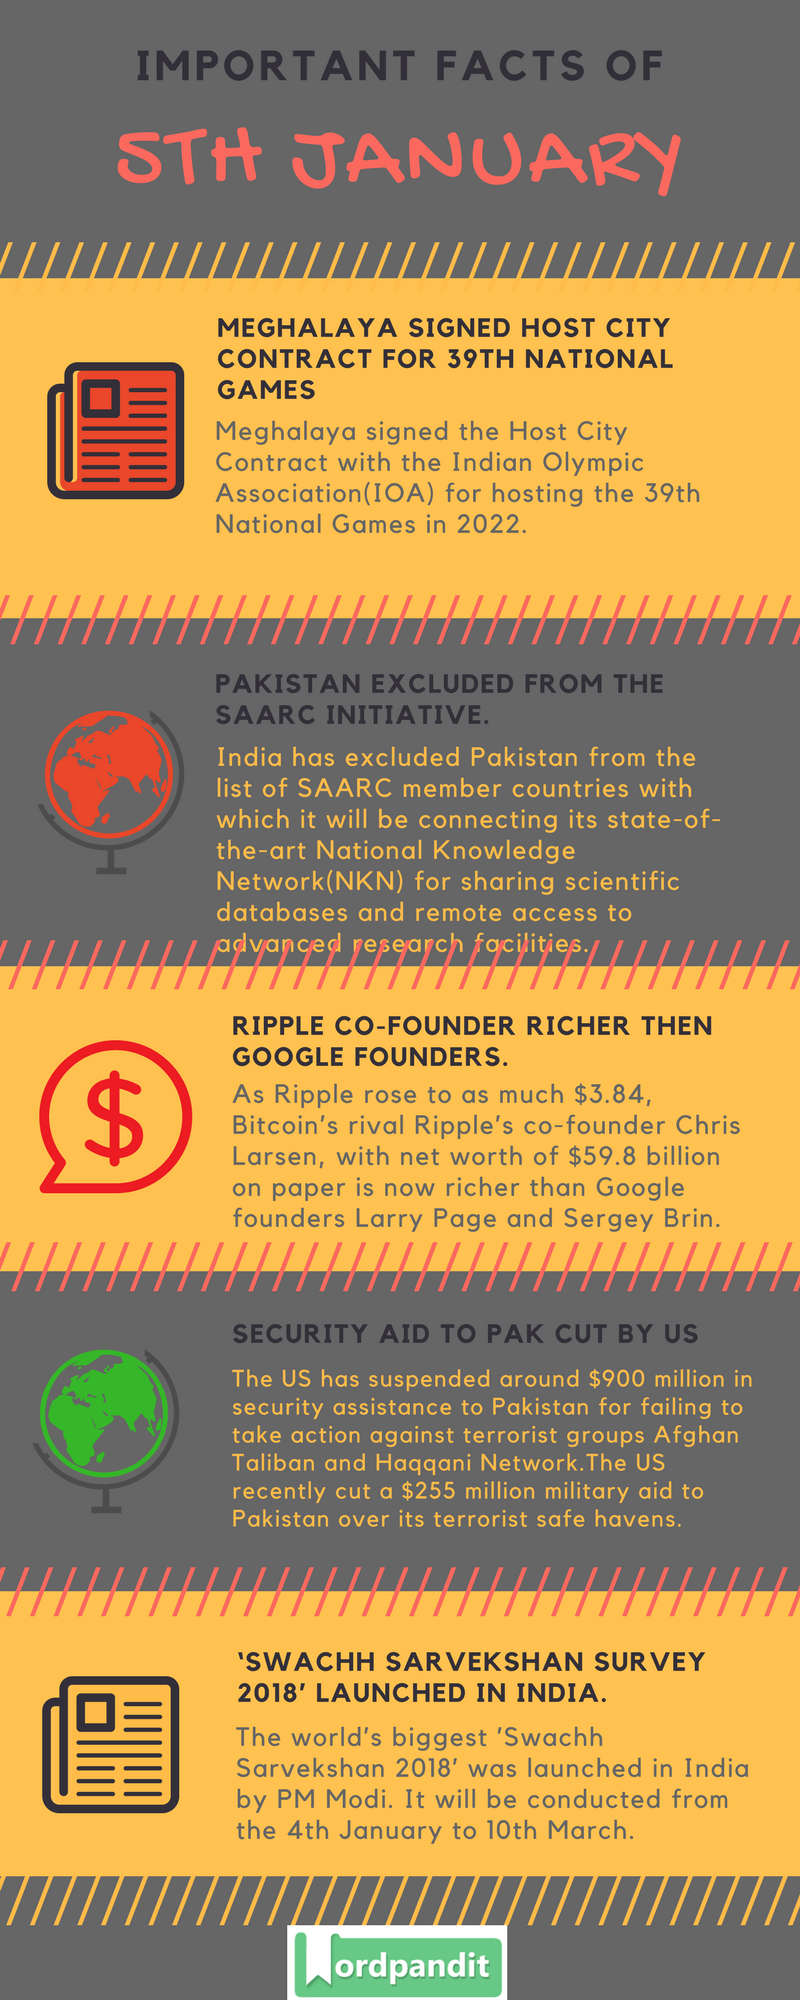 Daily Current Affairs 5 january 2018 Current Affairs Quiz january 5 2018 Current Affairs Infographic